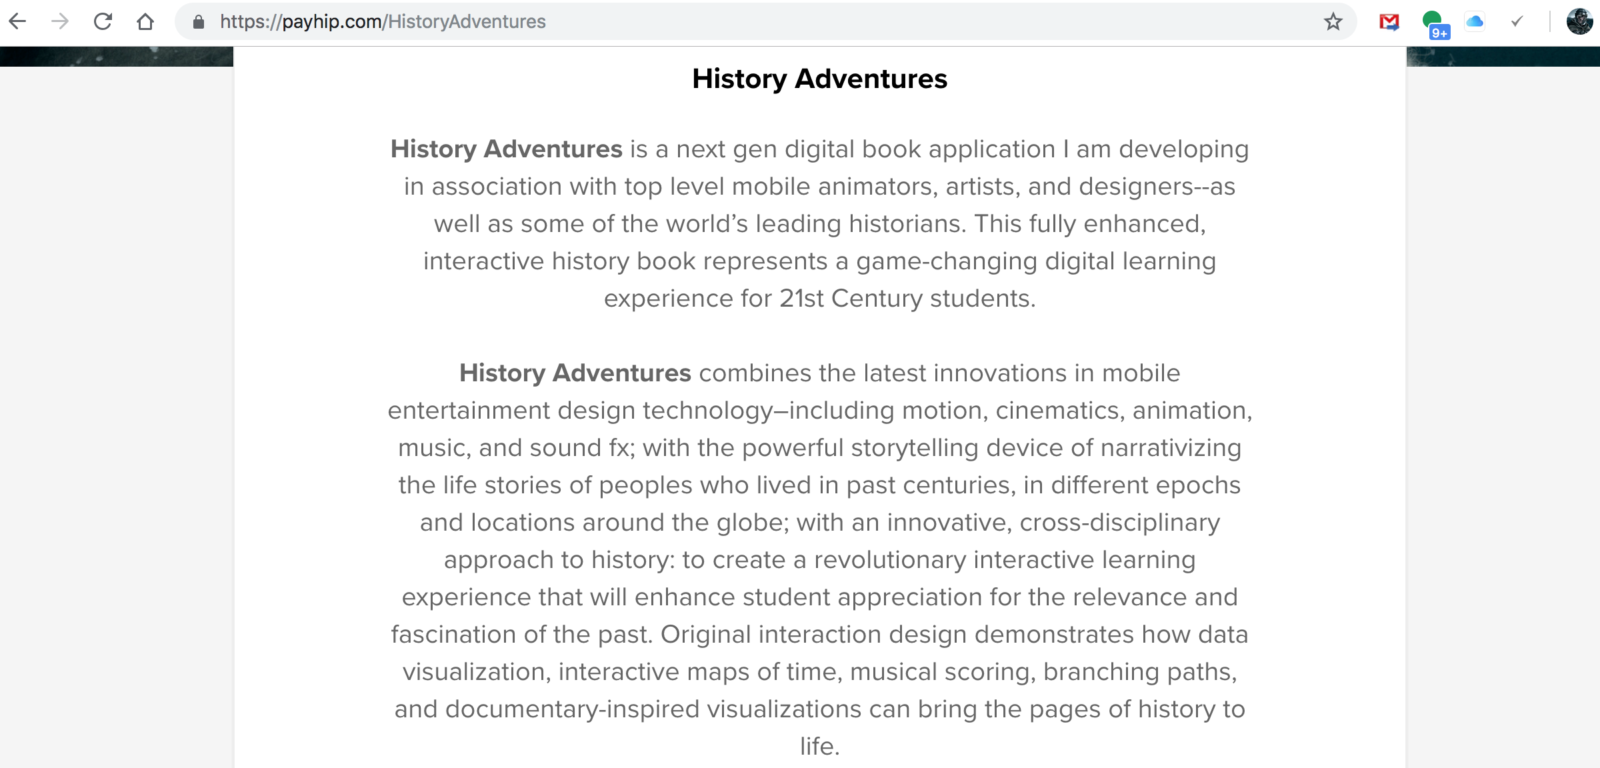 History Adventures Live on Payhip